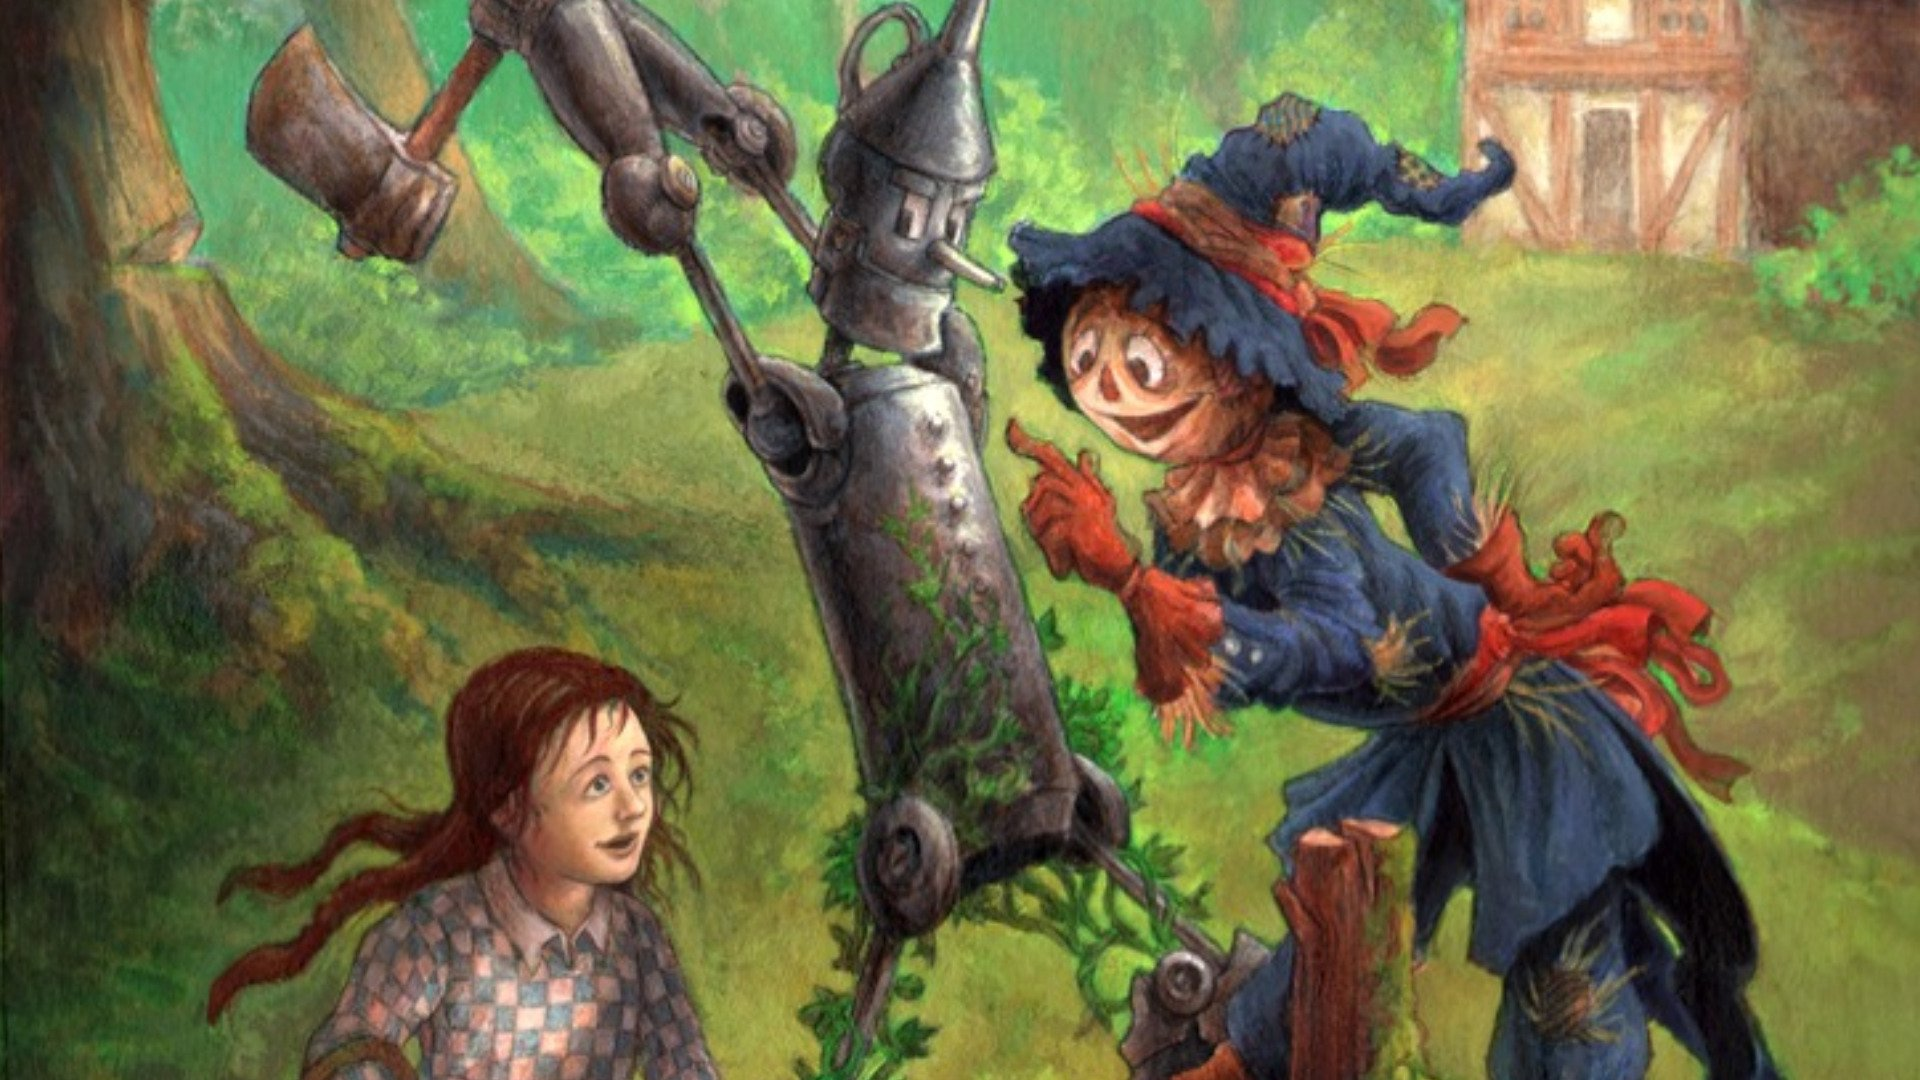 Free Wizard Of Oz Wallpaper